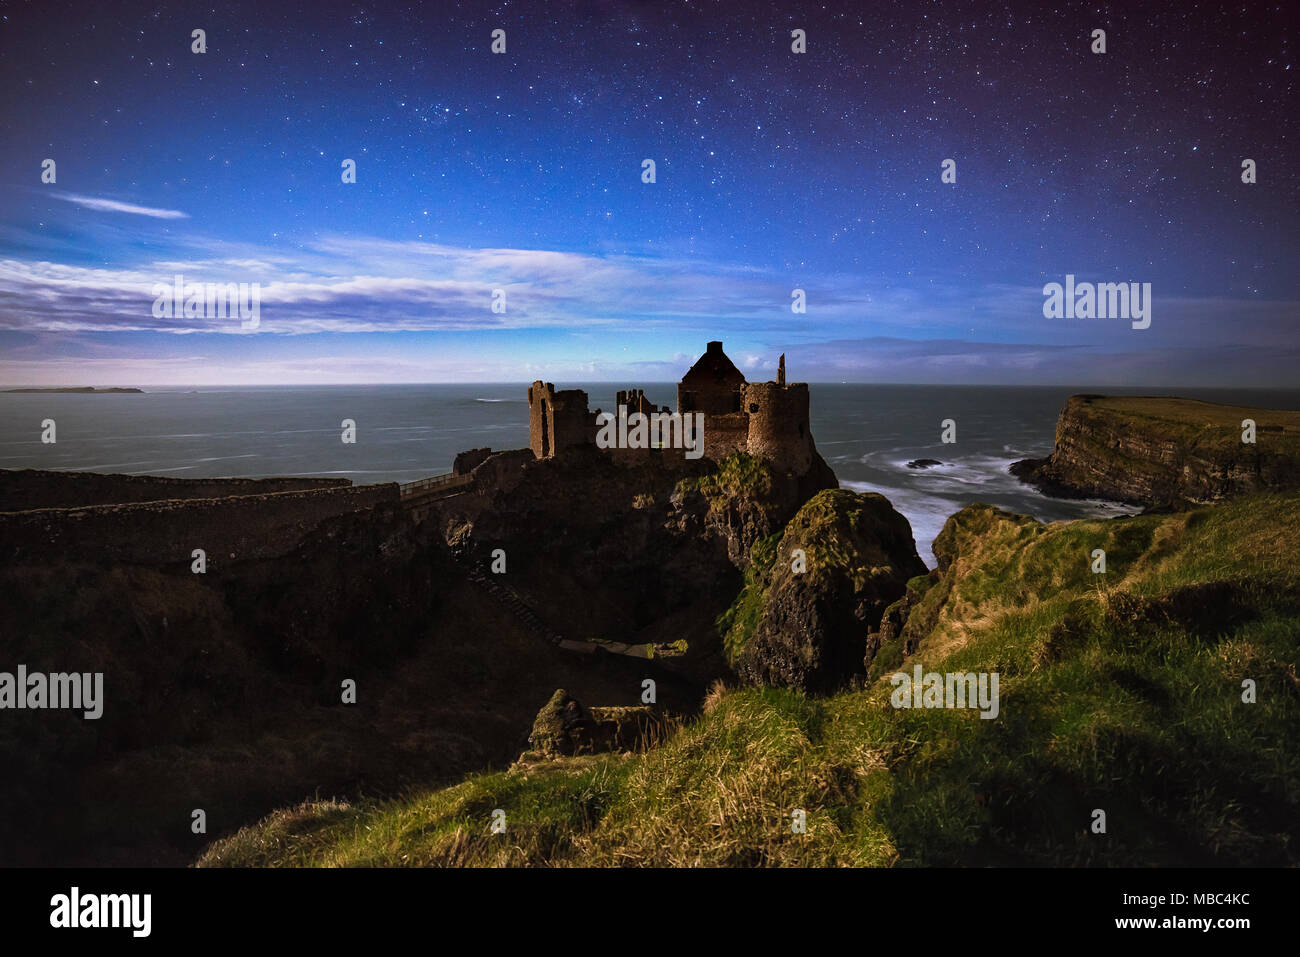 Dunluce Castle at night - Stock Image